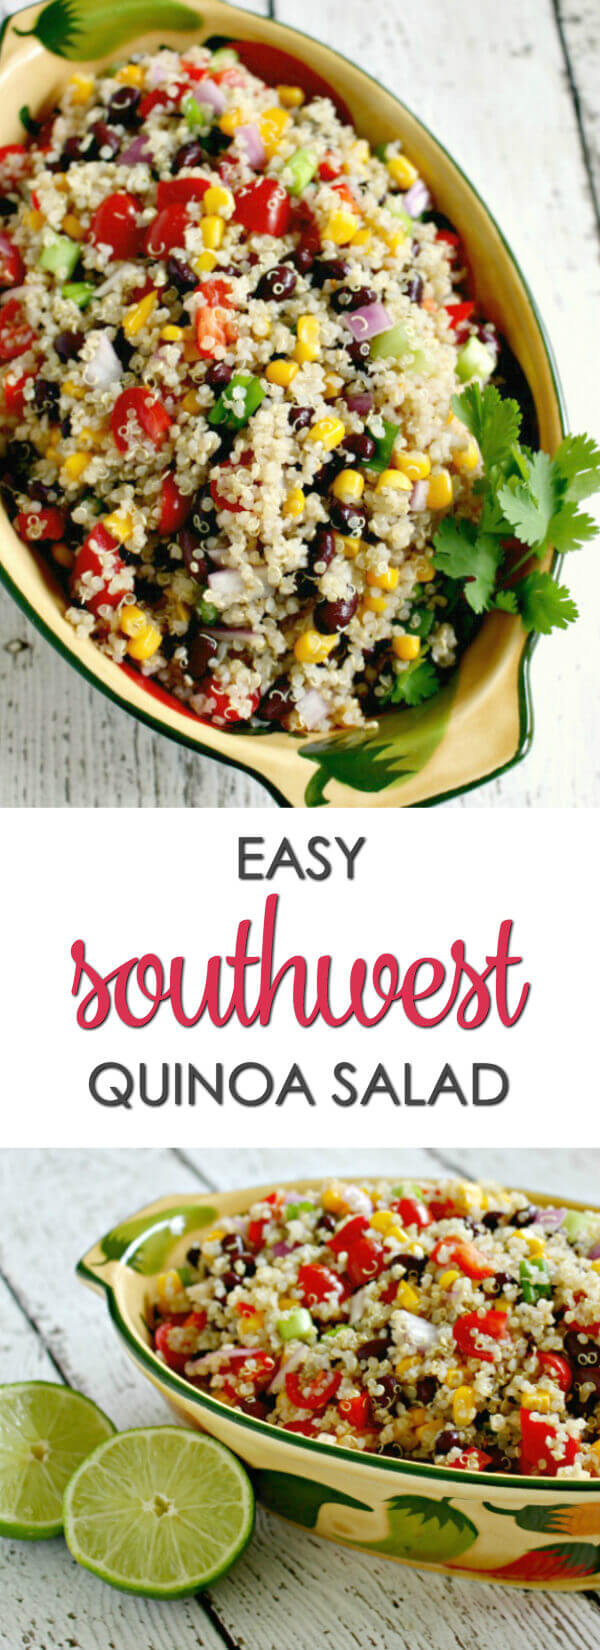 Southwest Quinoa Salad - this one of my favorite easy quinoa salad recipes